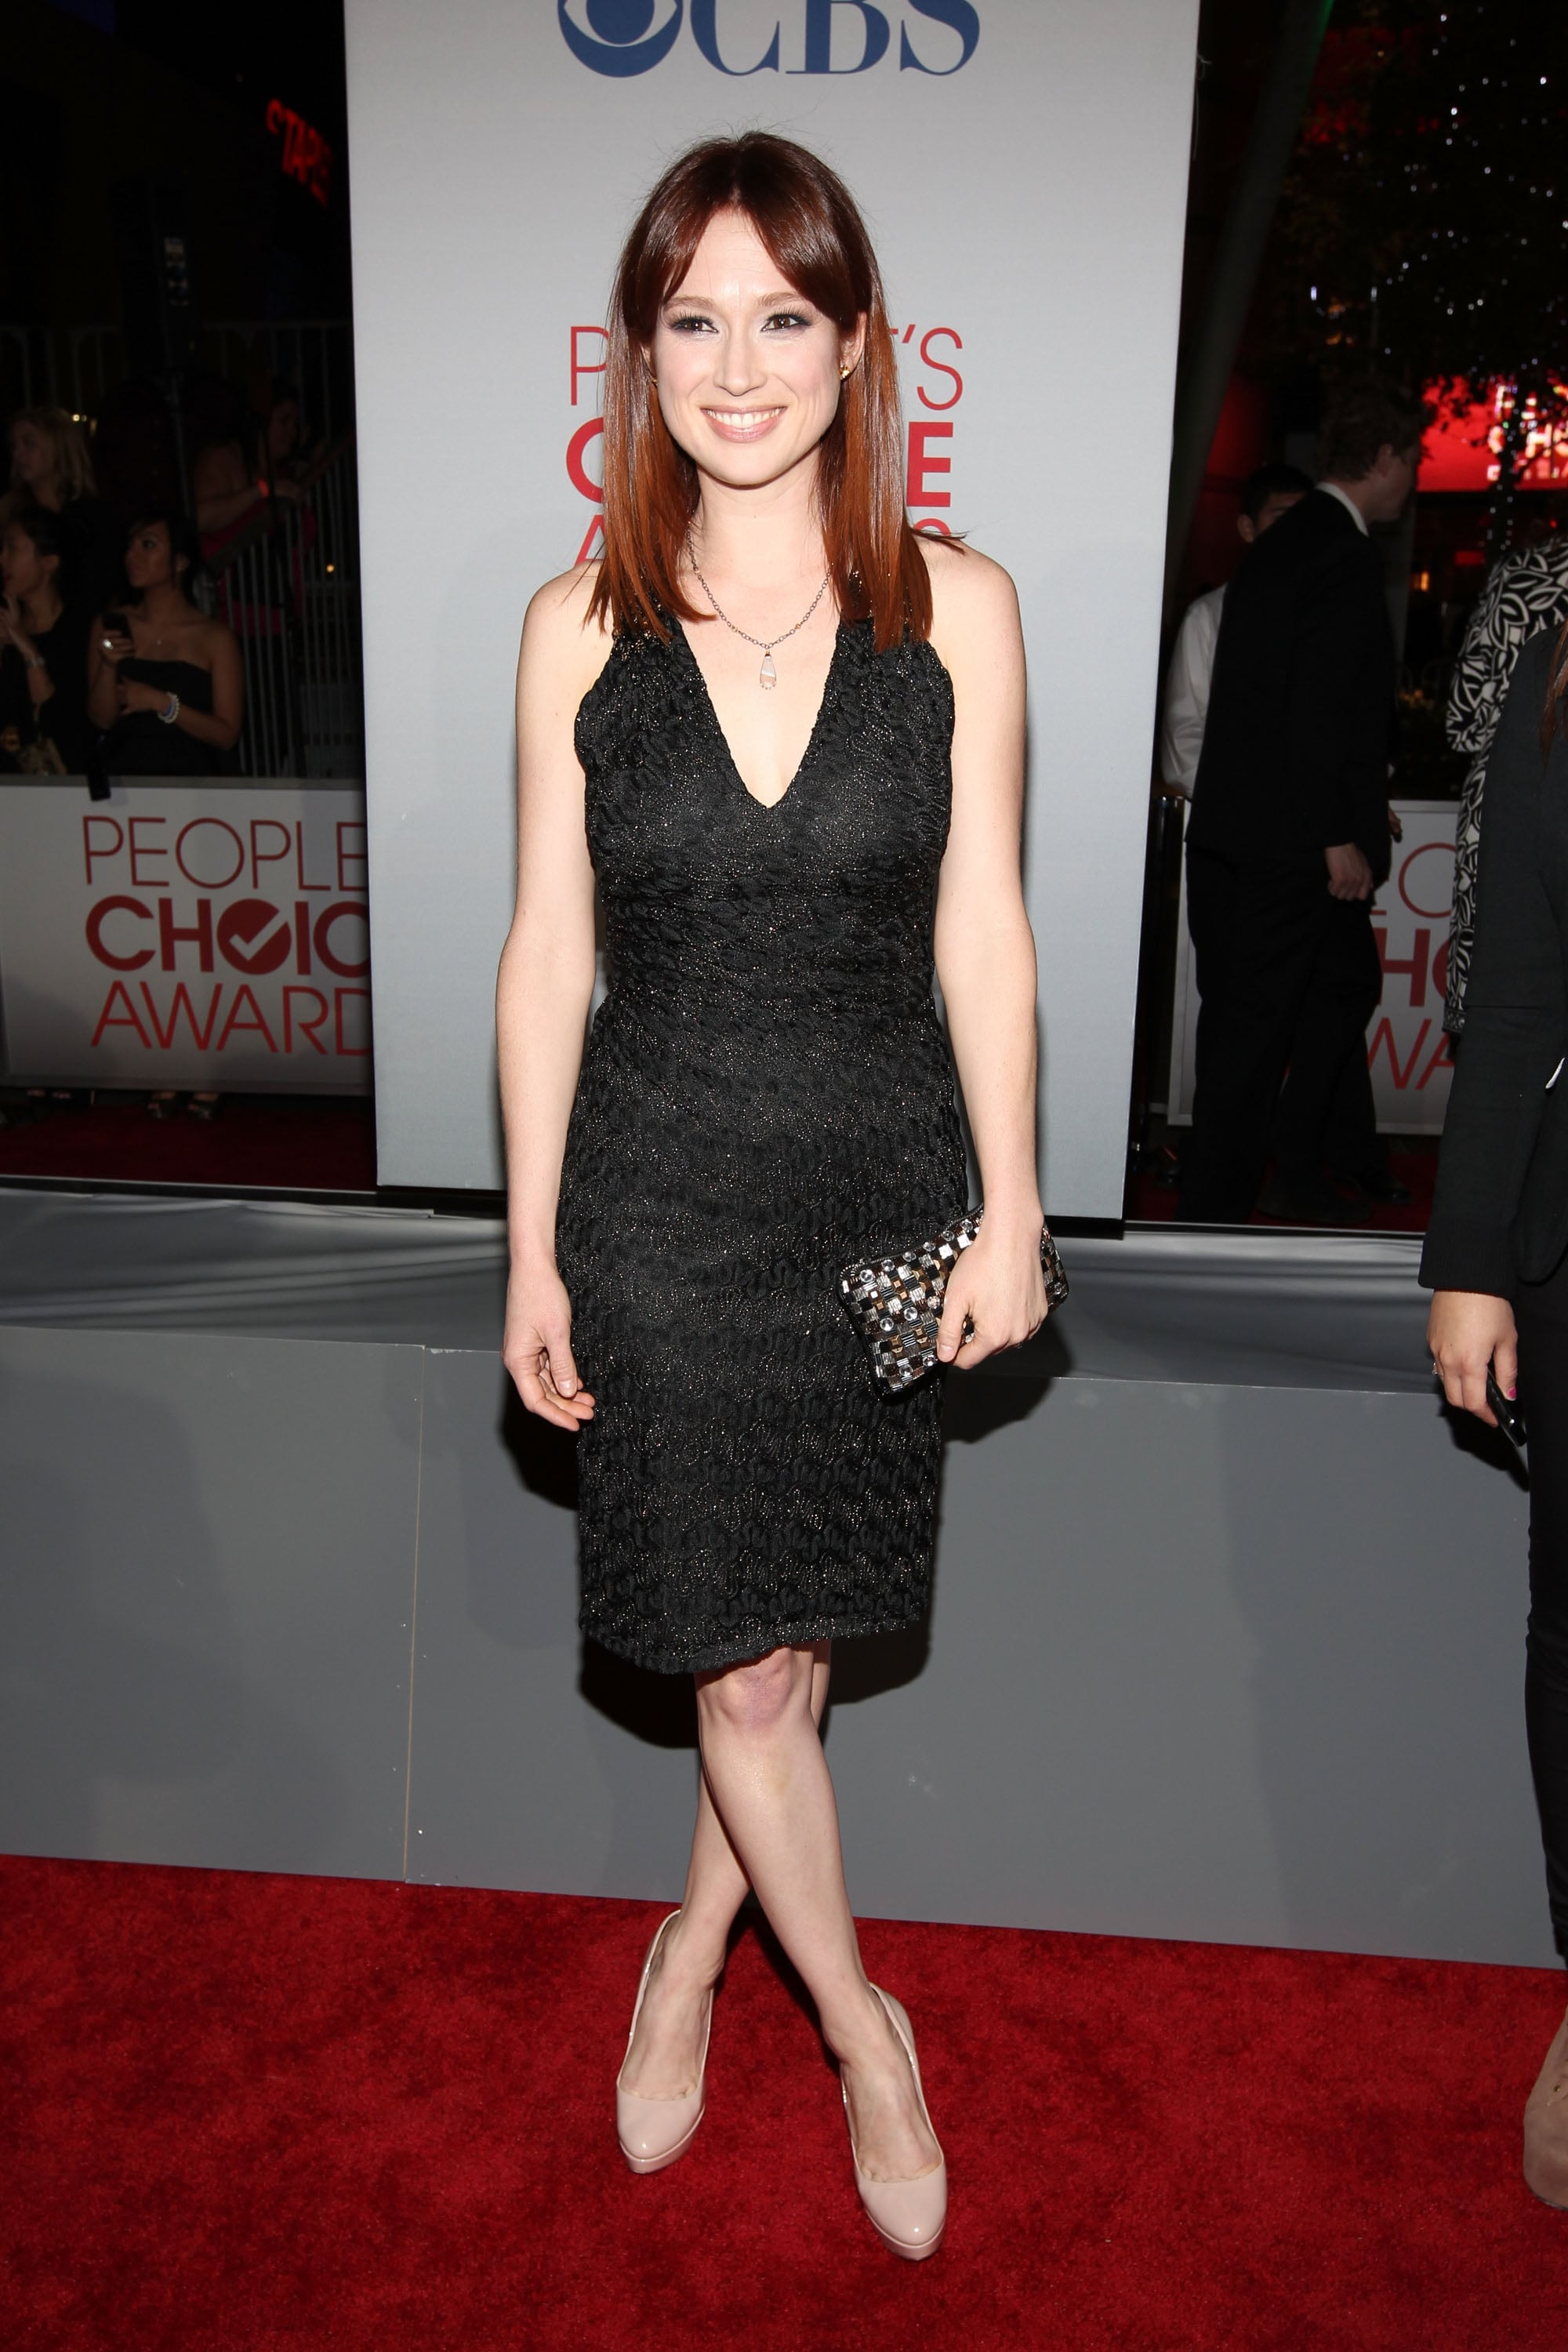 Ellie Kemper at the People's Choice Awards.